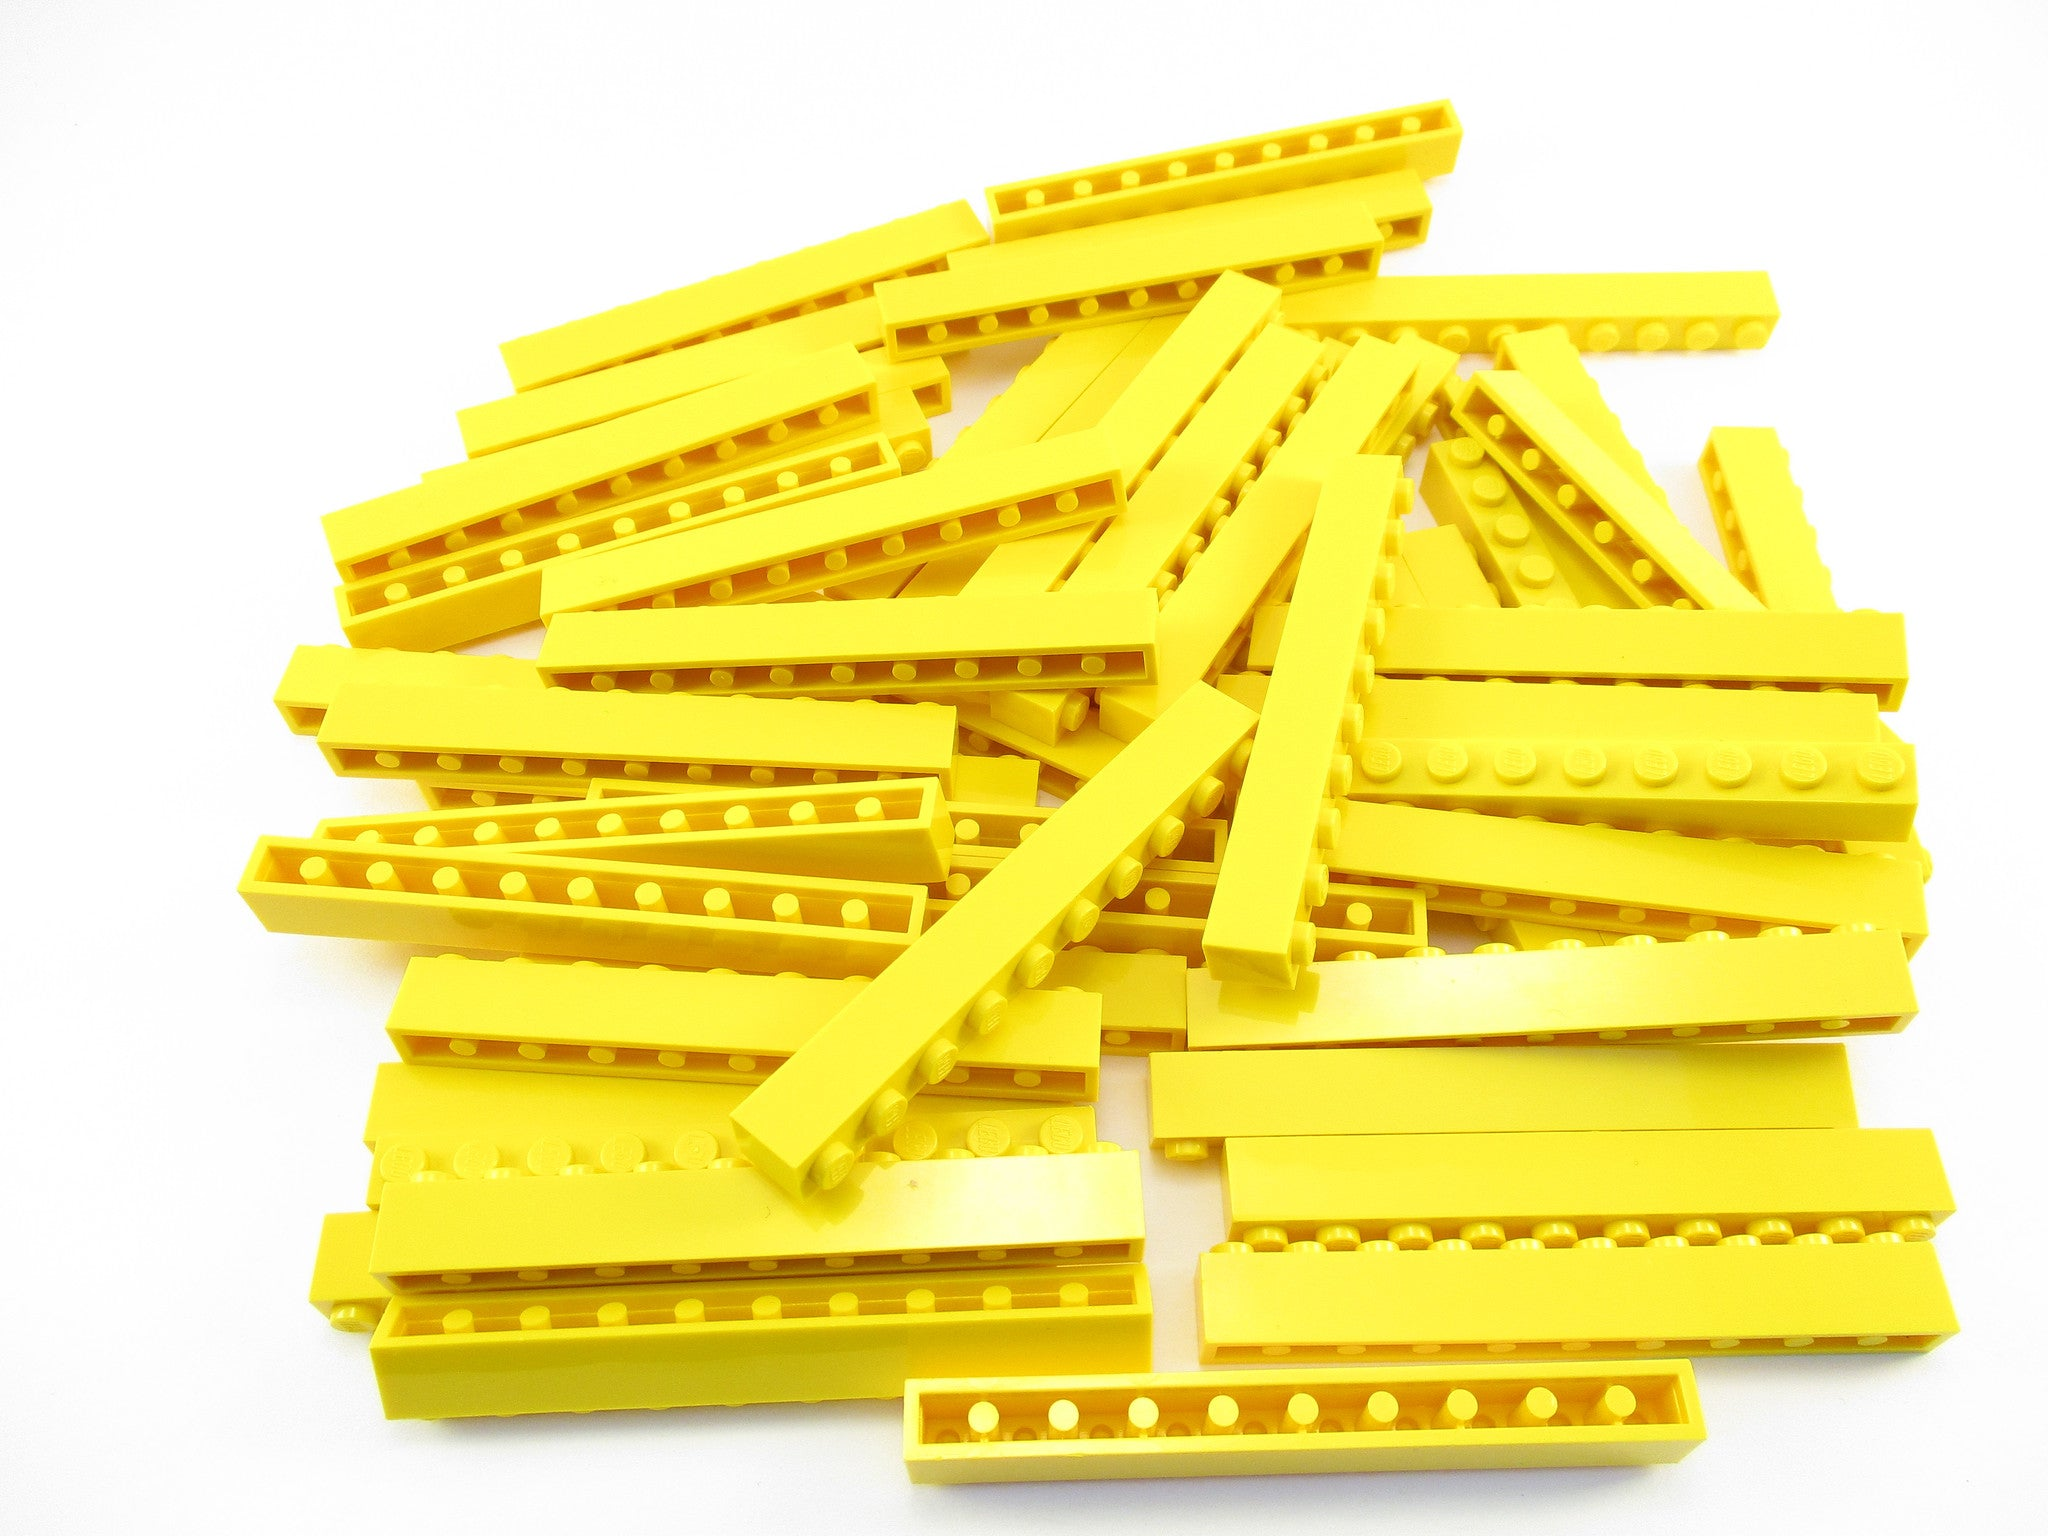 LEGO Yellow Brick 1x10 Lot of 50 Parts Pieces 6111